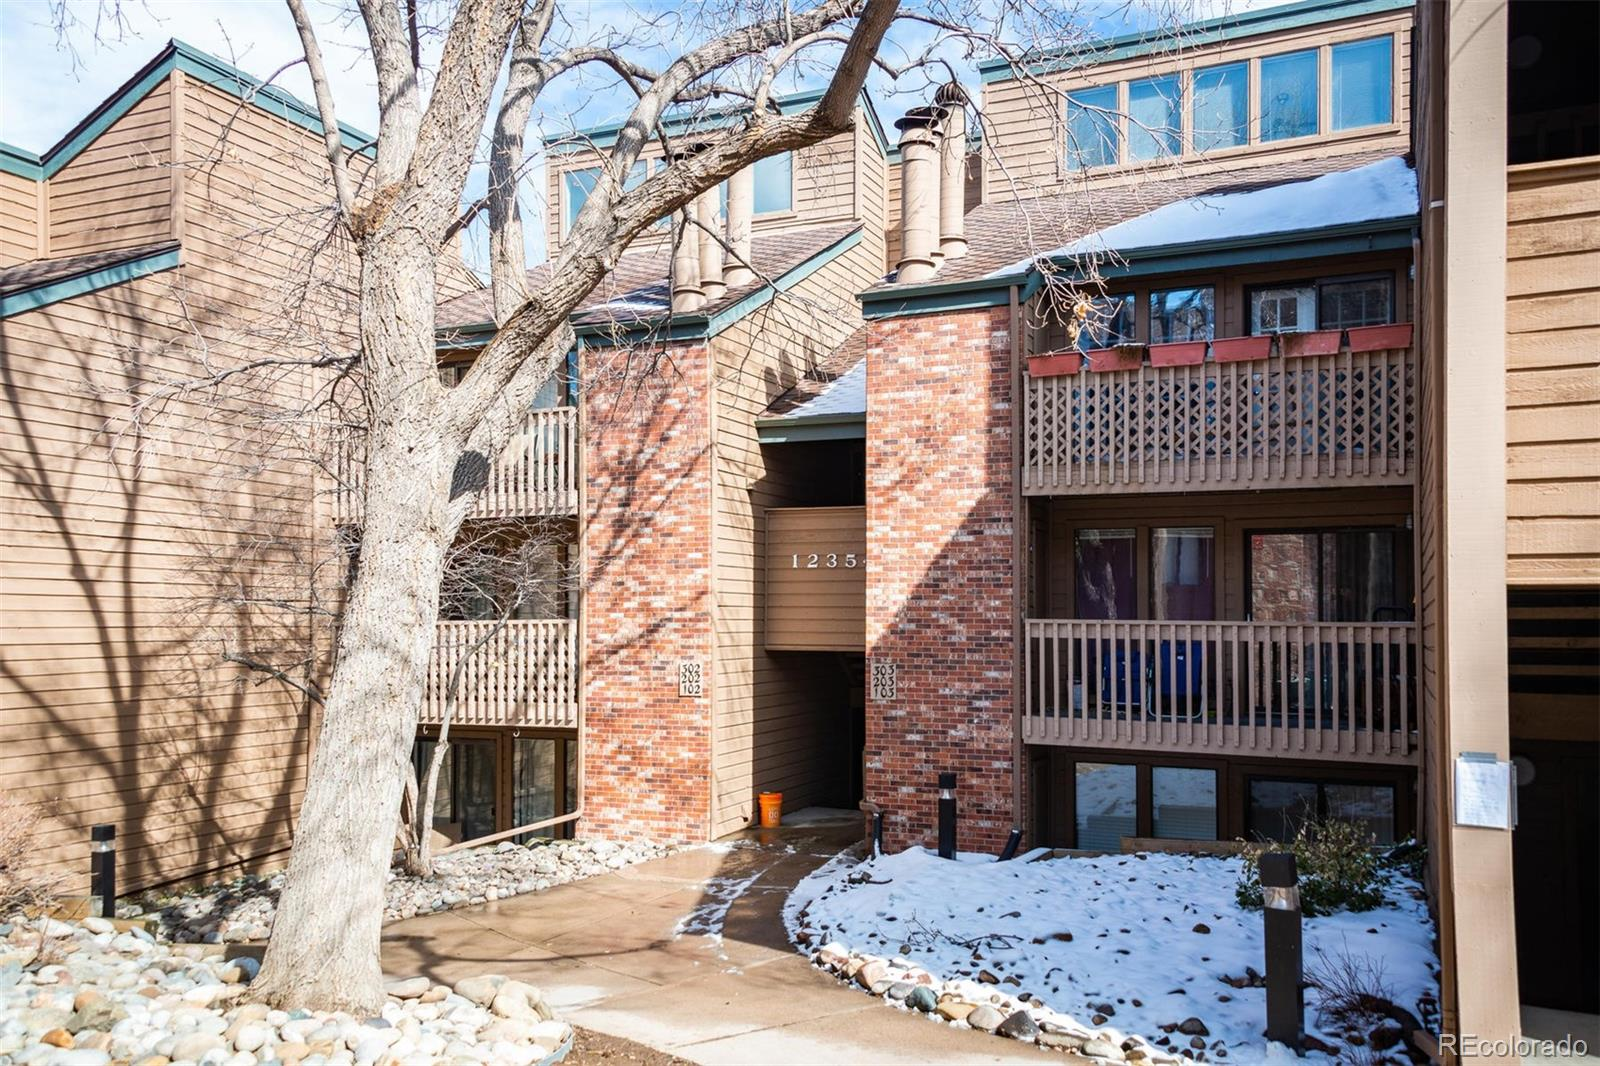 MLS# 9142860 - 1 - 12354 W Nevada Place #303, Lakewood, CO 80228